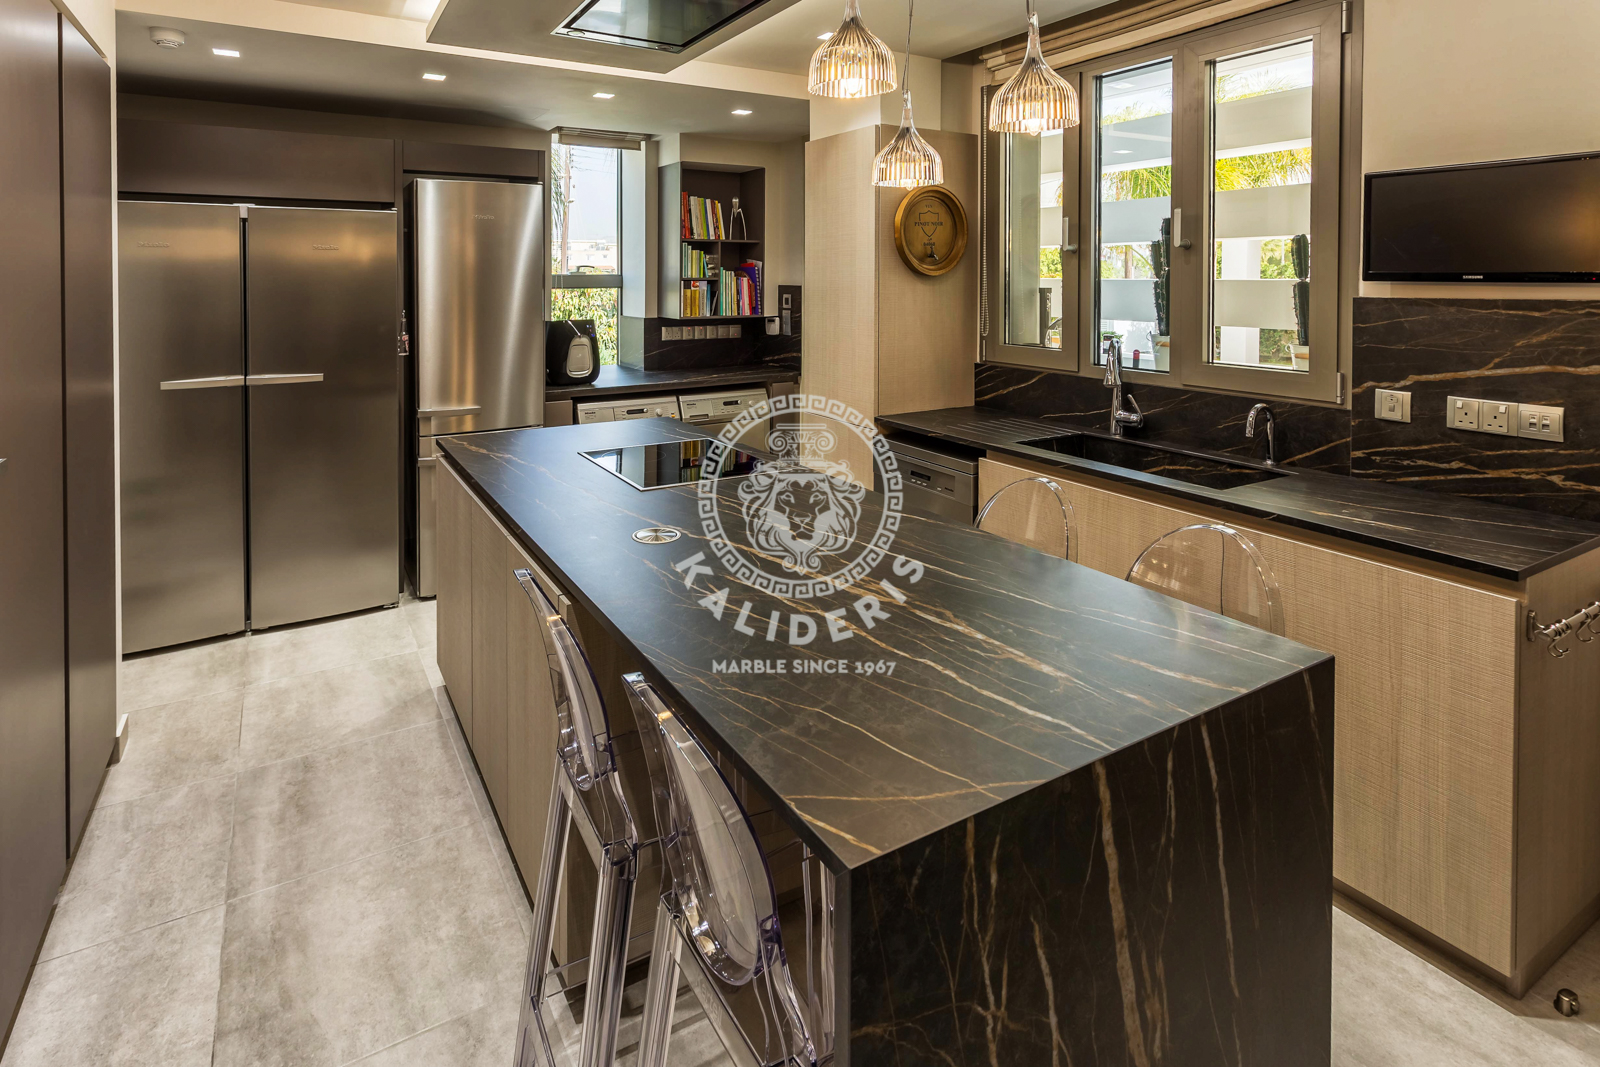 kalideris marble:what a great company to work with!